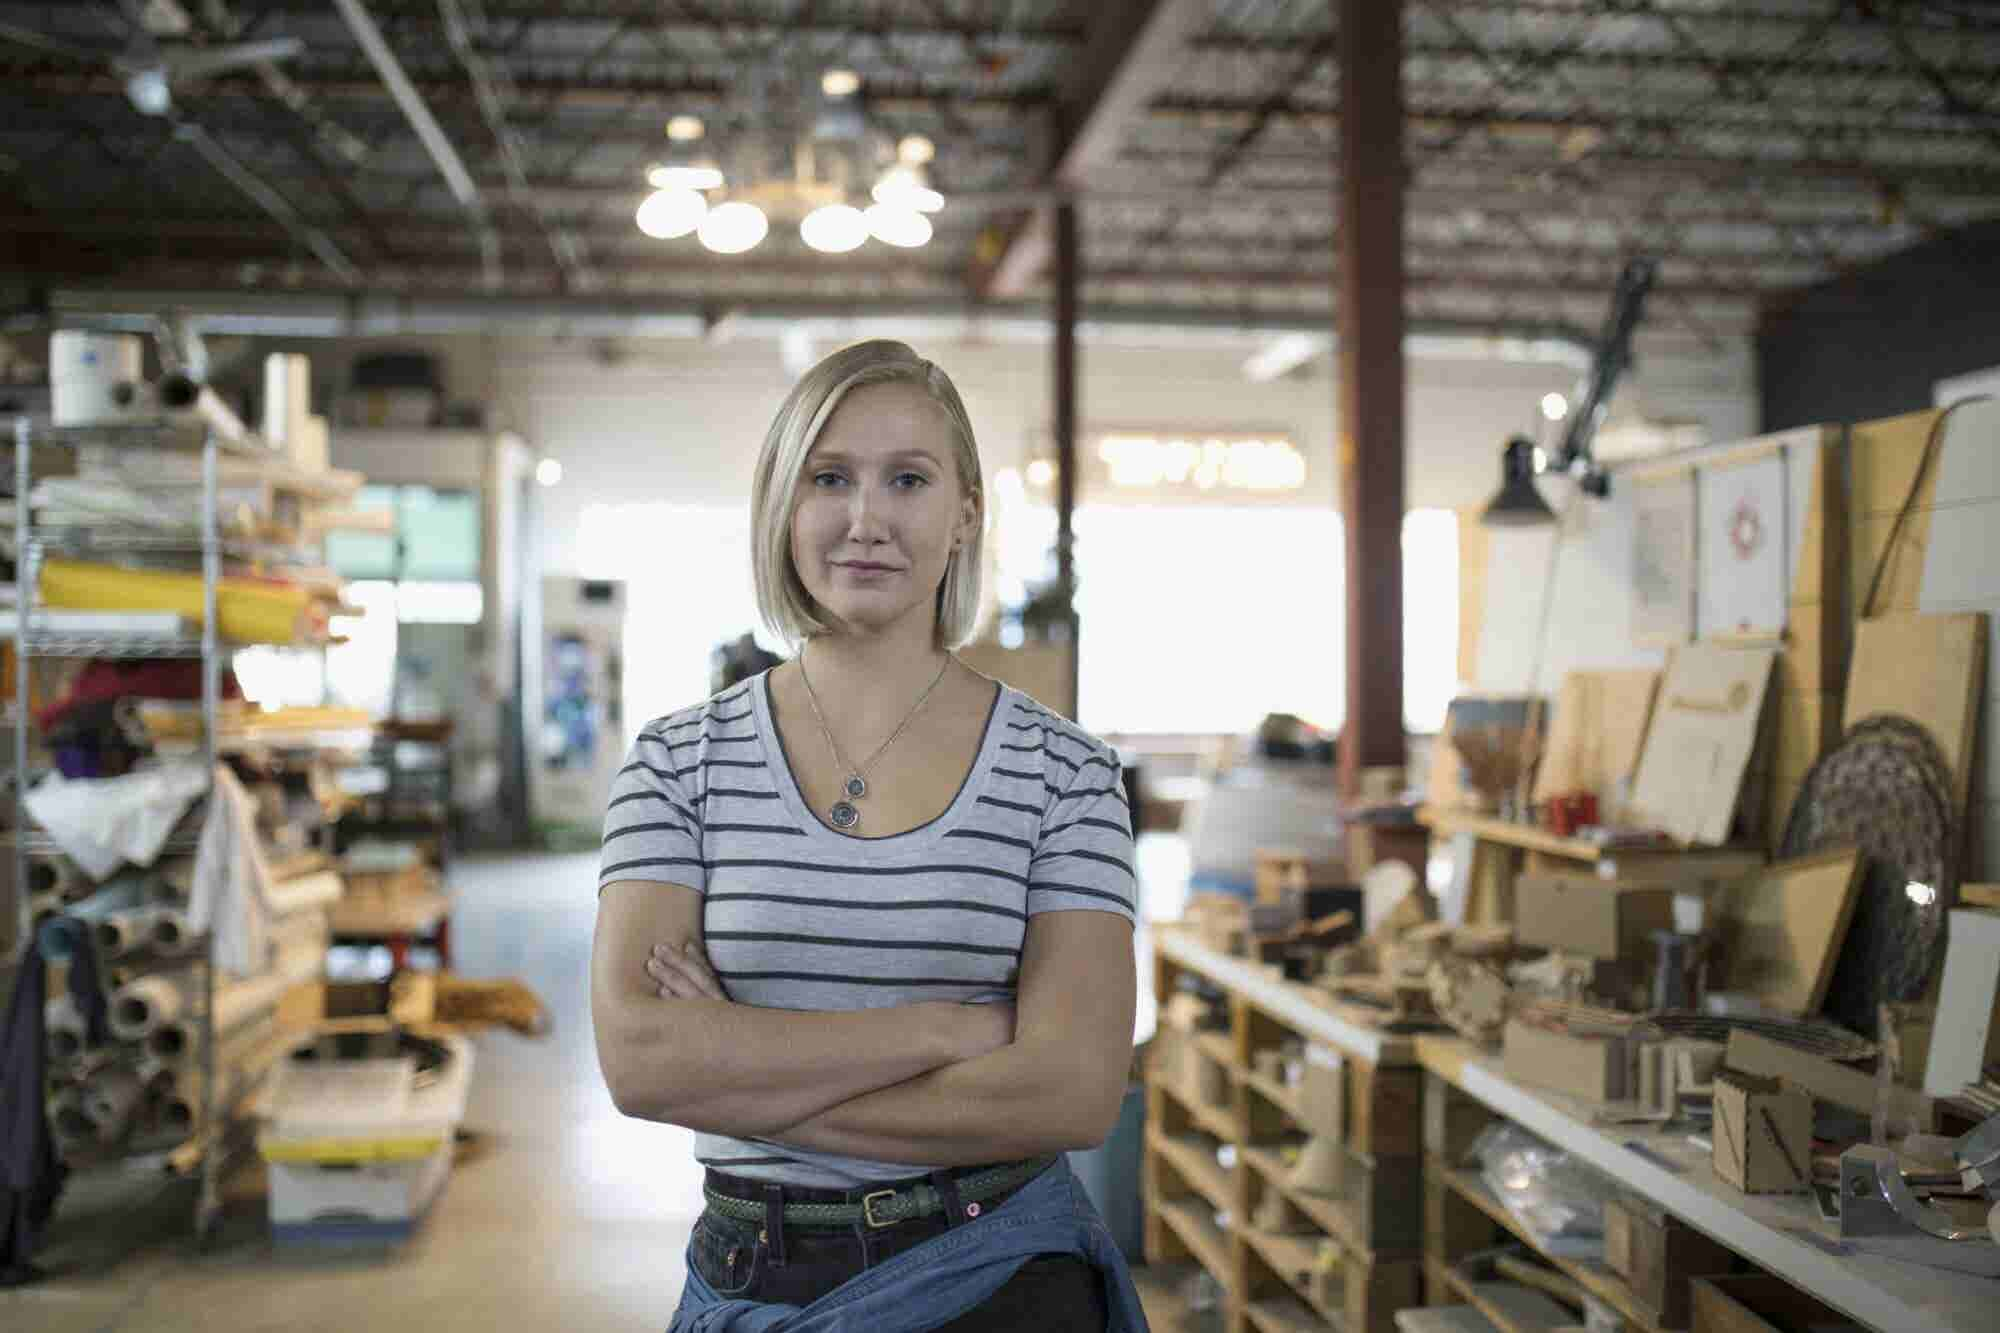 Enter Entrepreneur's 'Build Like a Woman' Contest and Showcase the Inspiration Behind Your Business